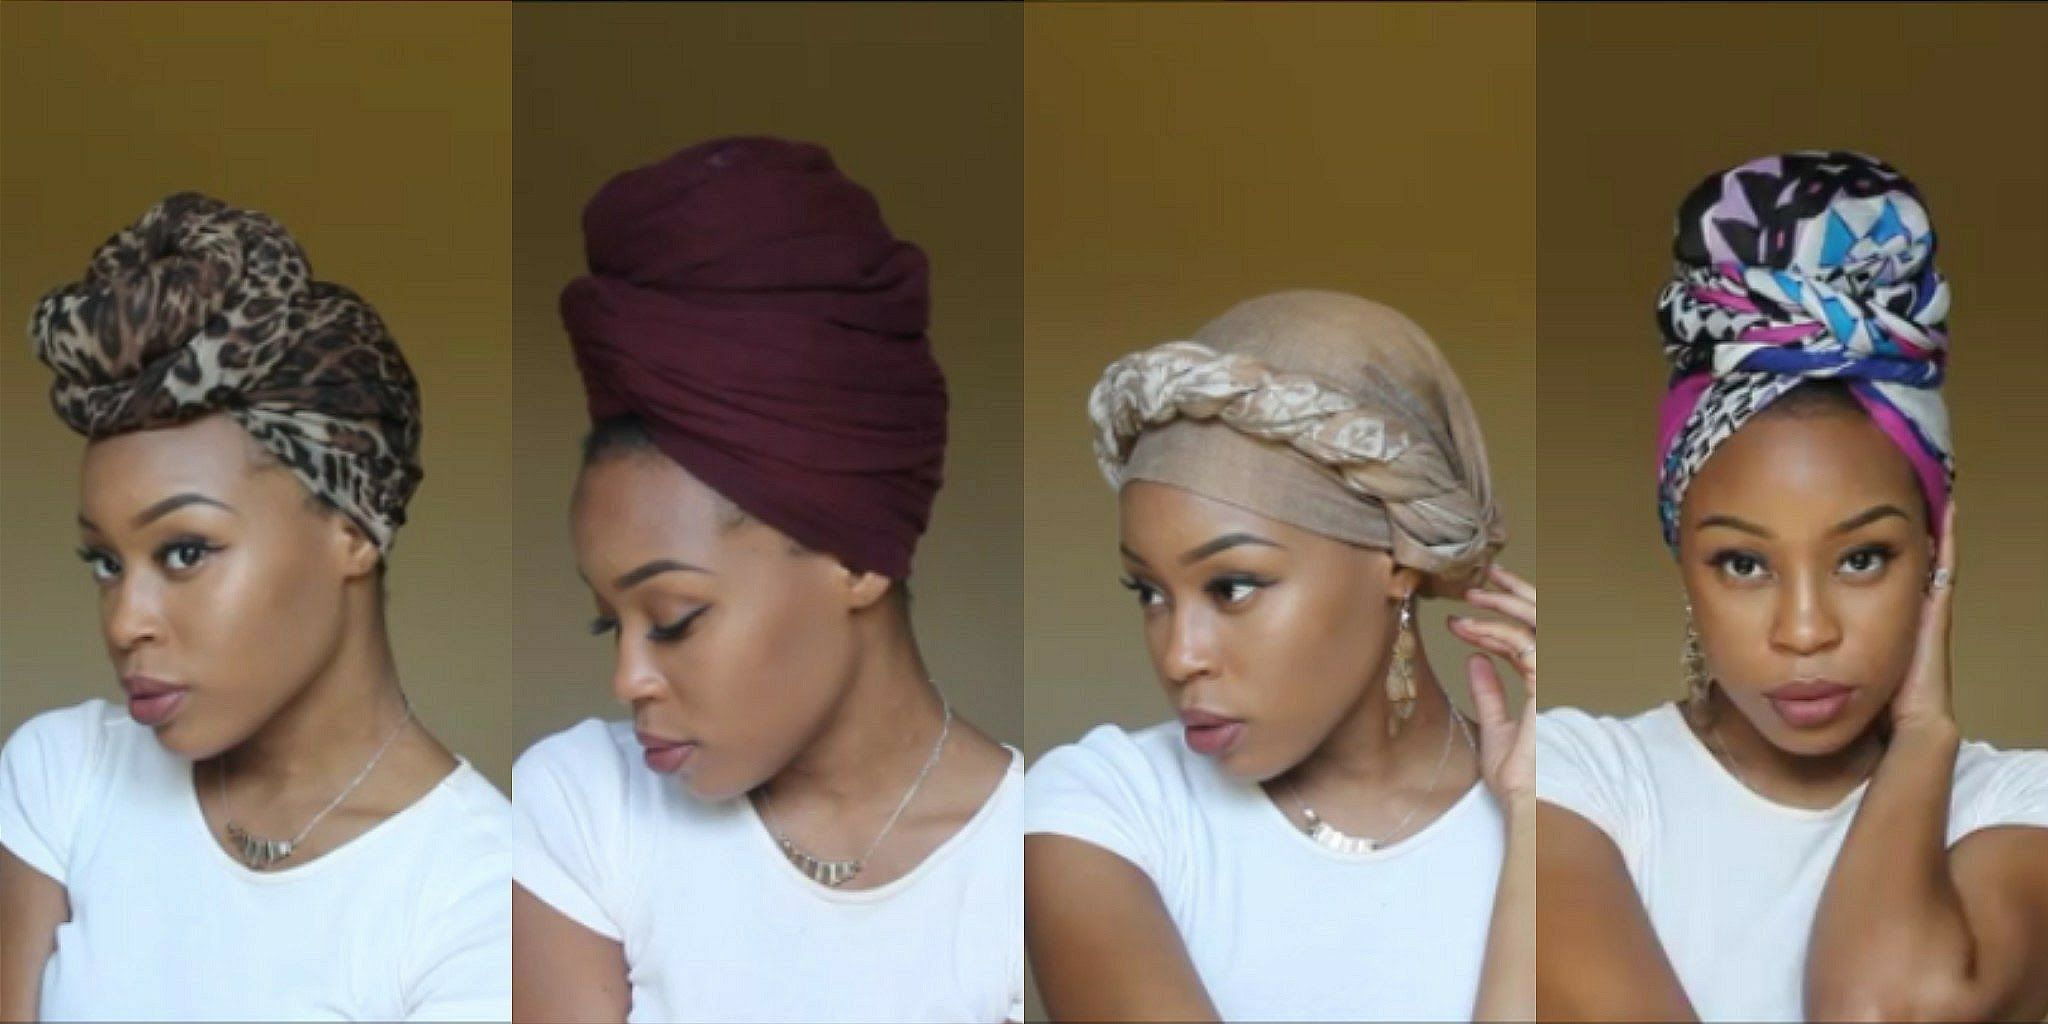 Coiffure Africaine Avec Foulard 4 Quick And Easy Headwrap Turban Styles Short Natural Hair